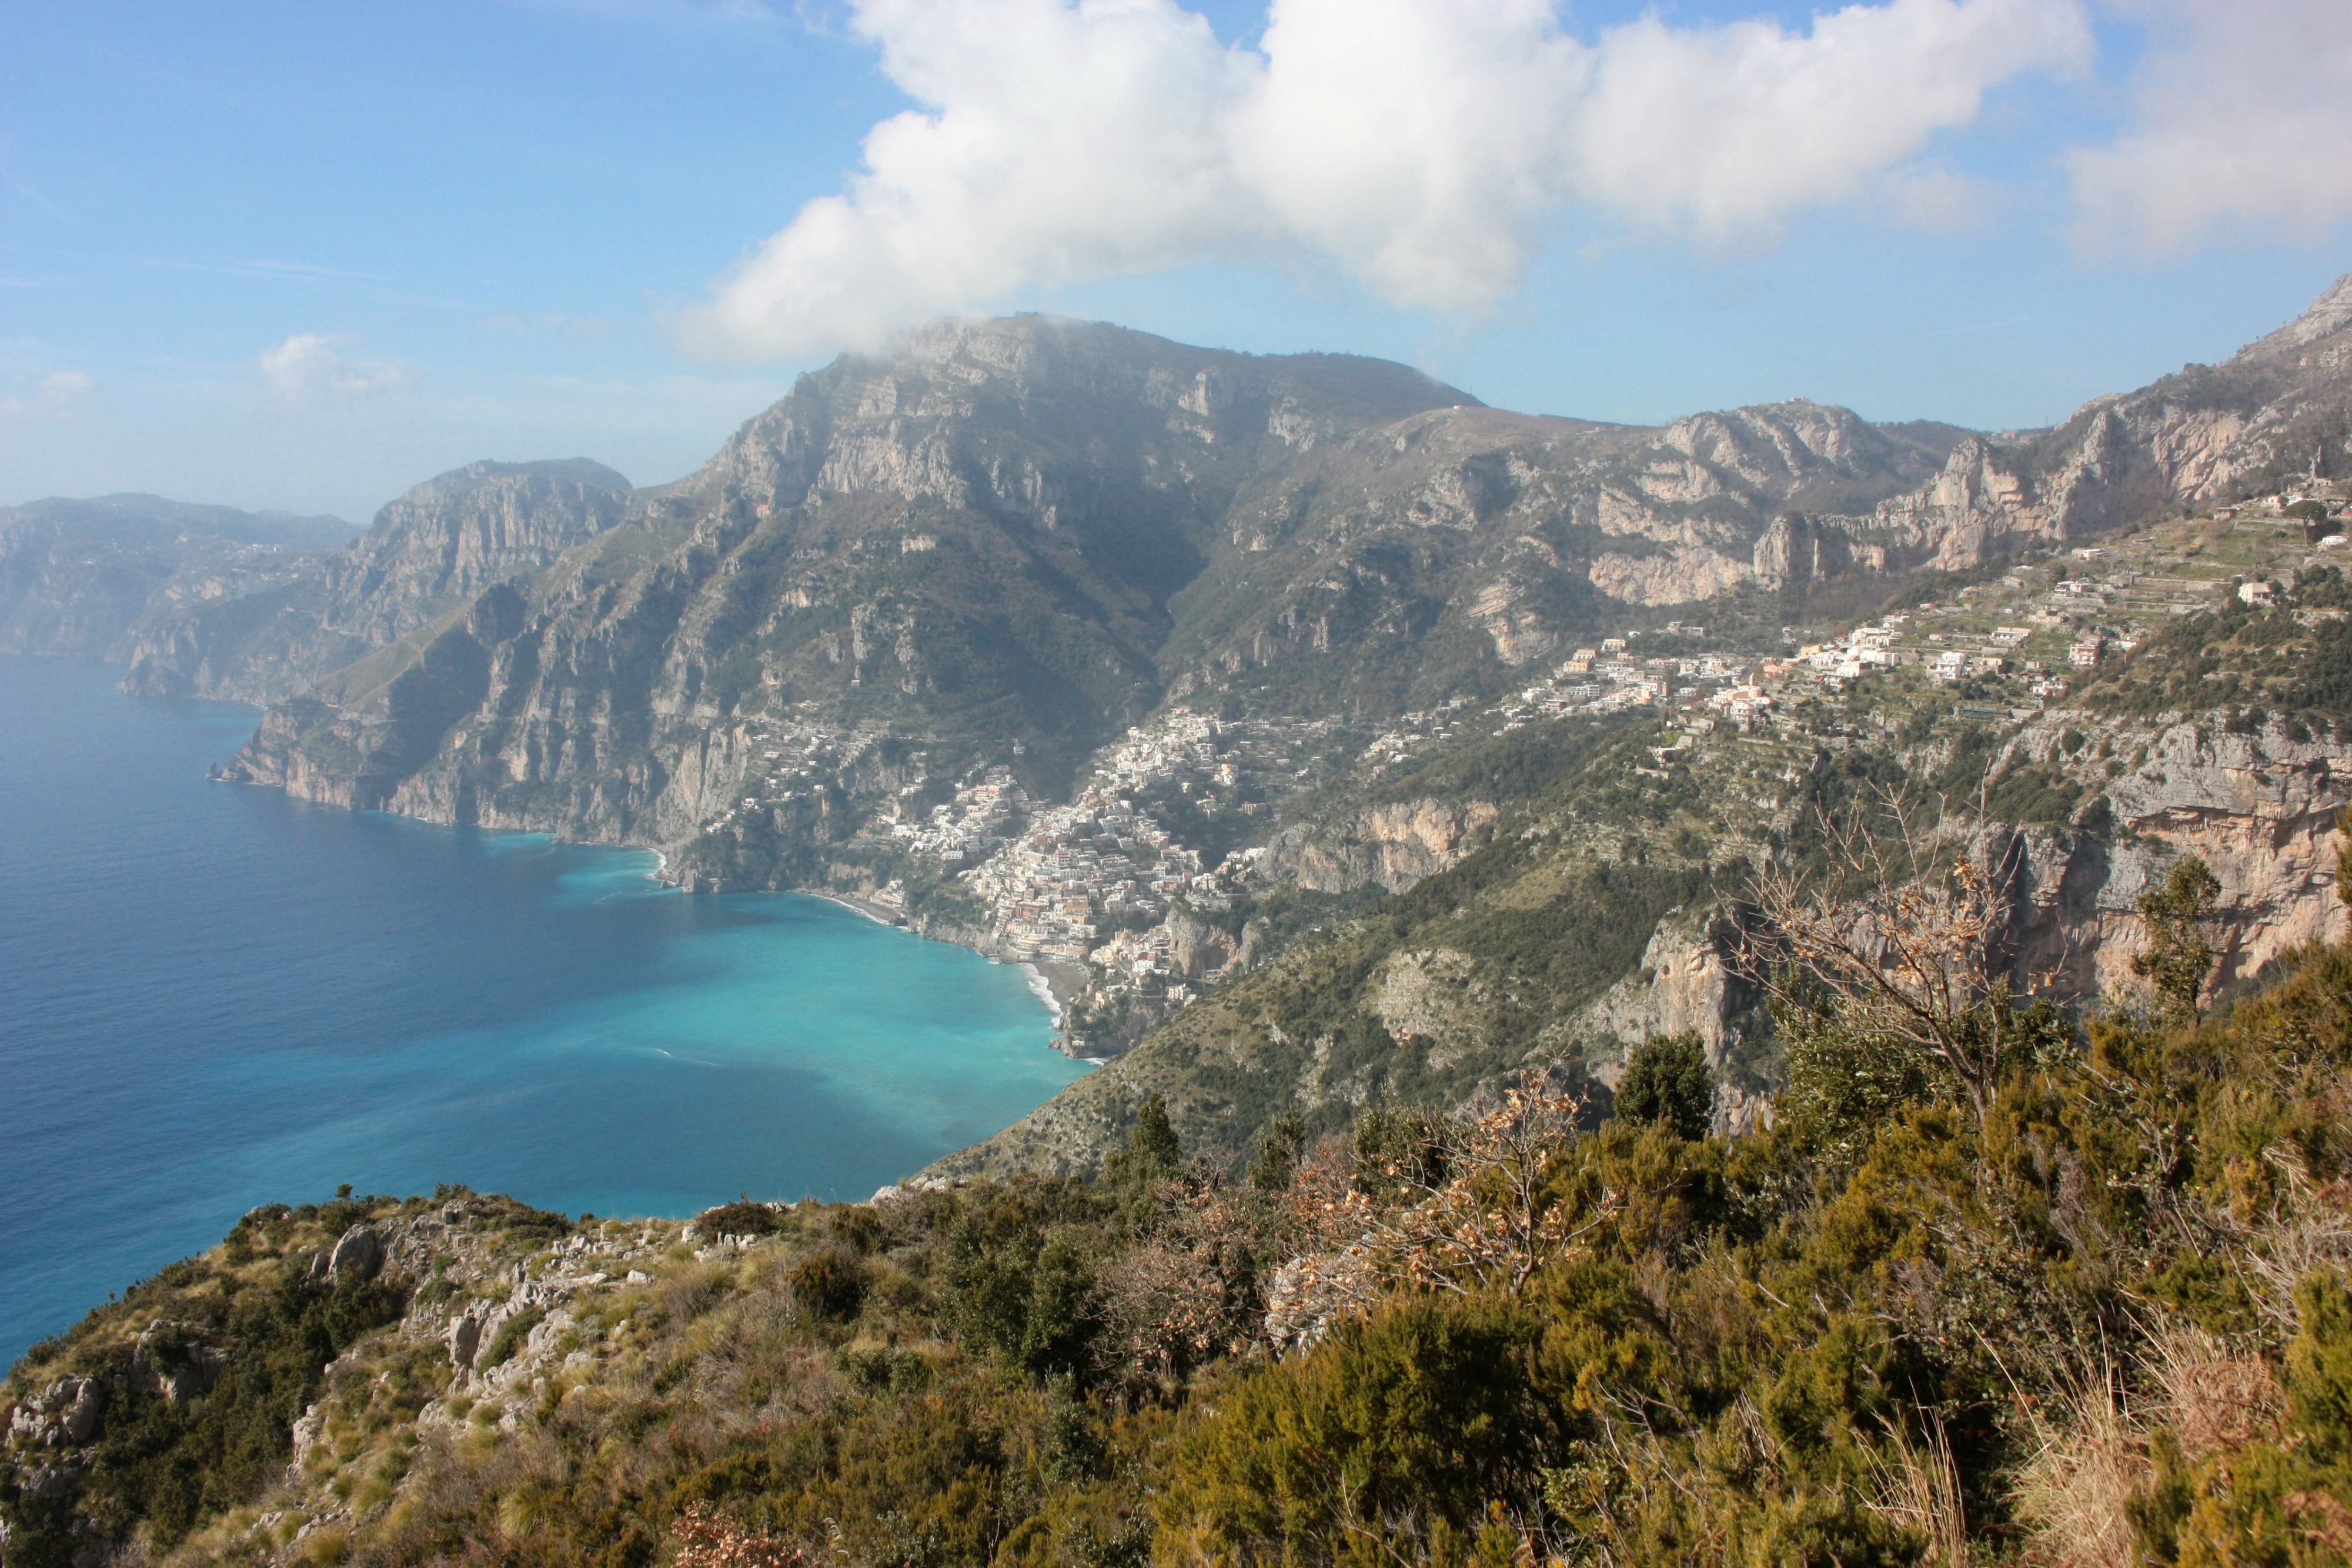 The peninsula of the Amalfi Coast, with sky-blue water and steep cliffs